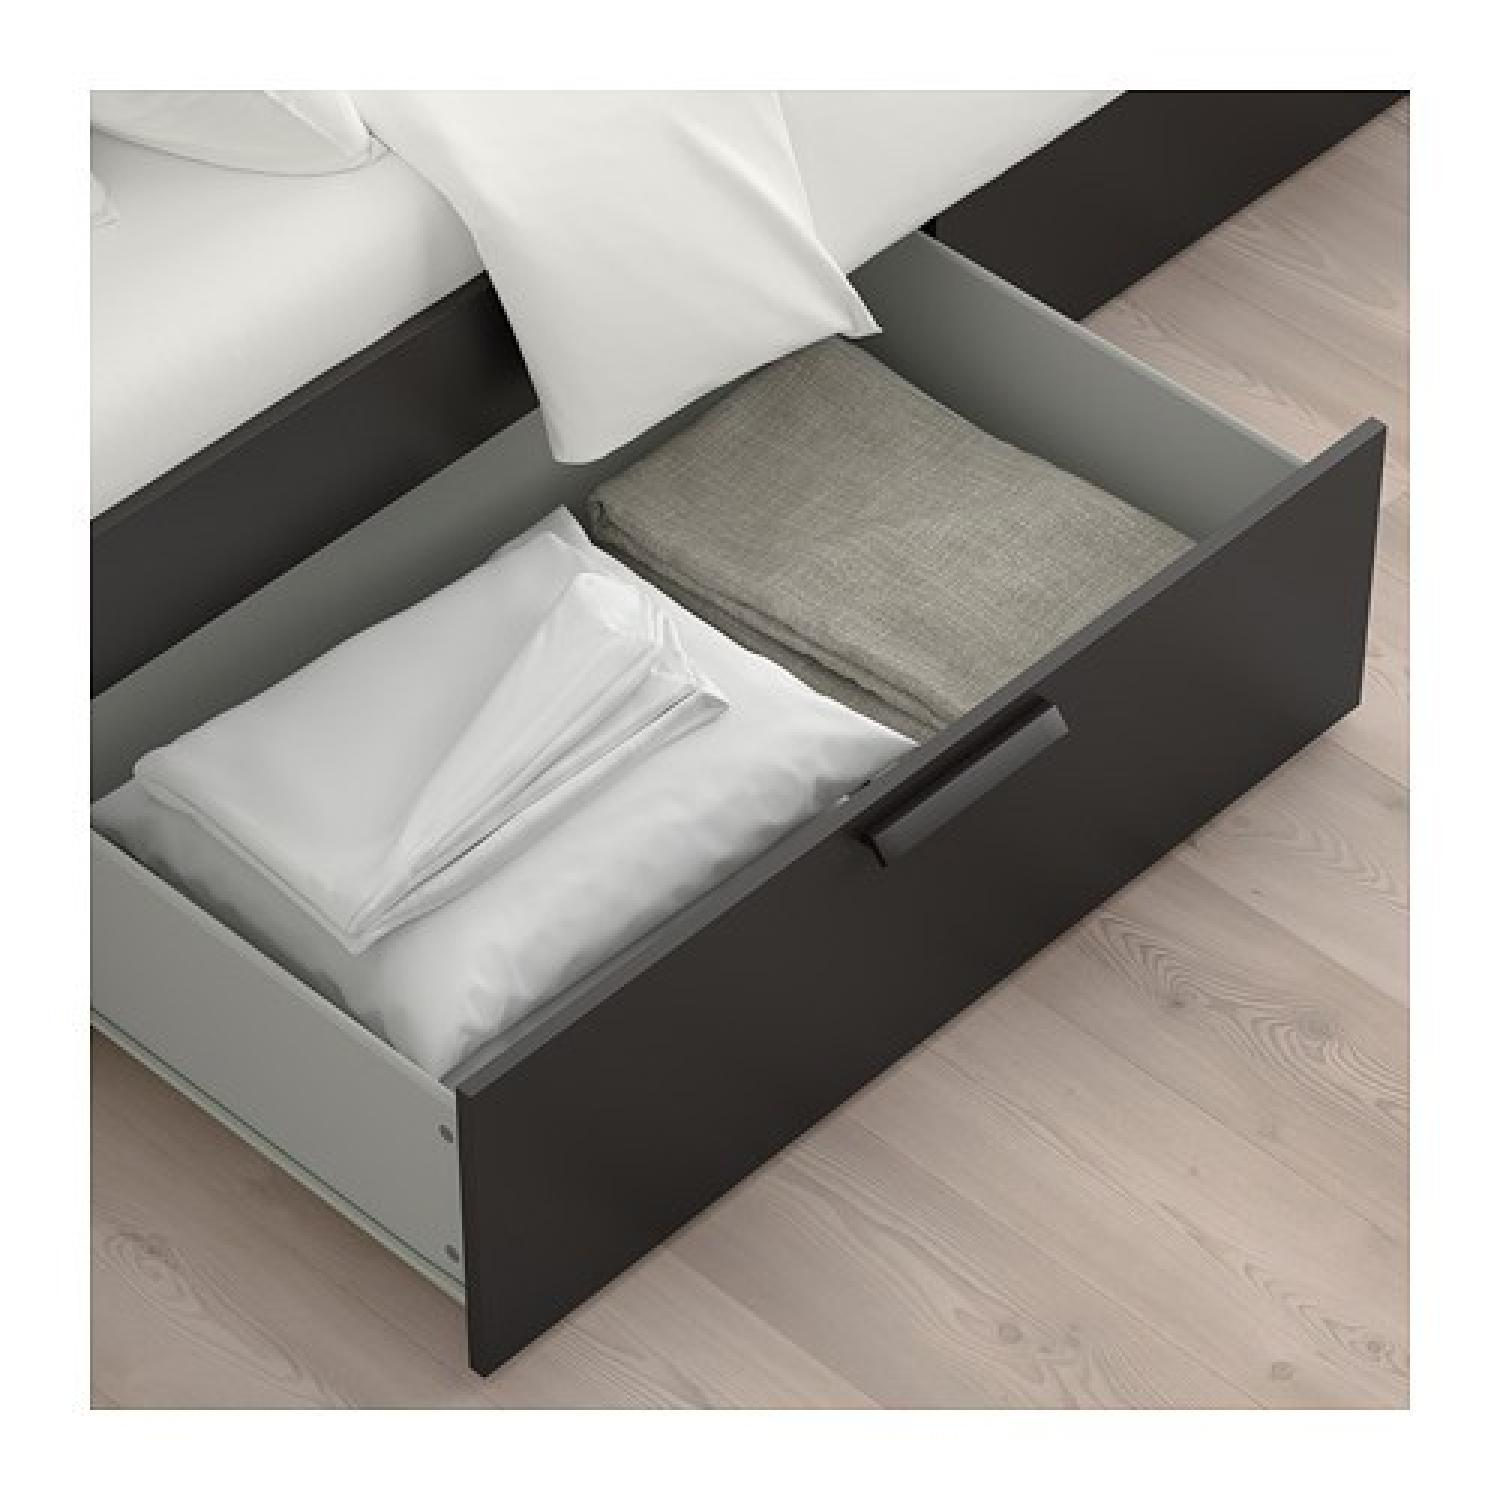 Ikea Brimnes Storage Bed Frame w and Headboard & Bed AptDeco